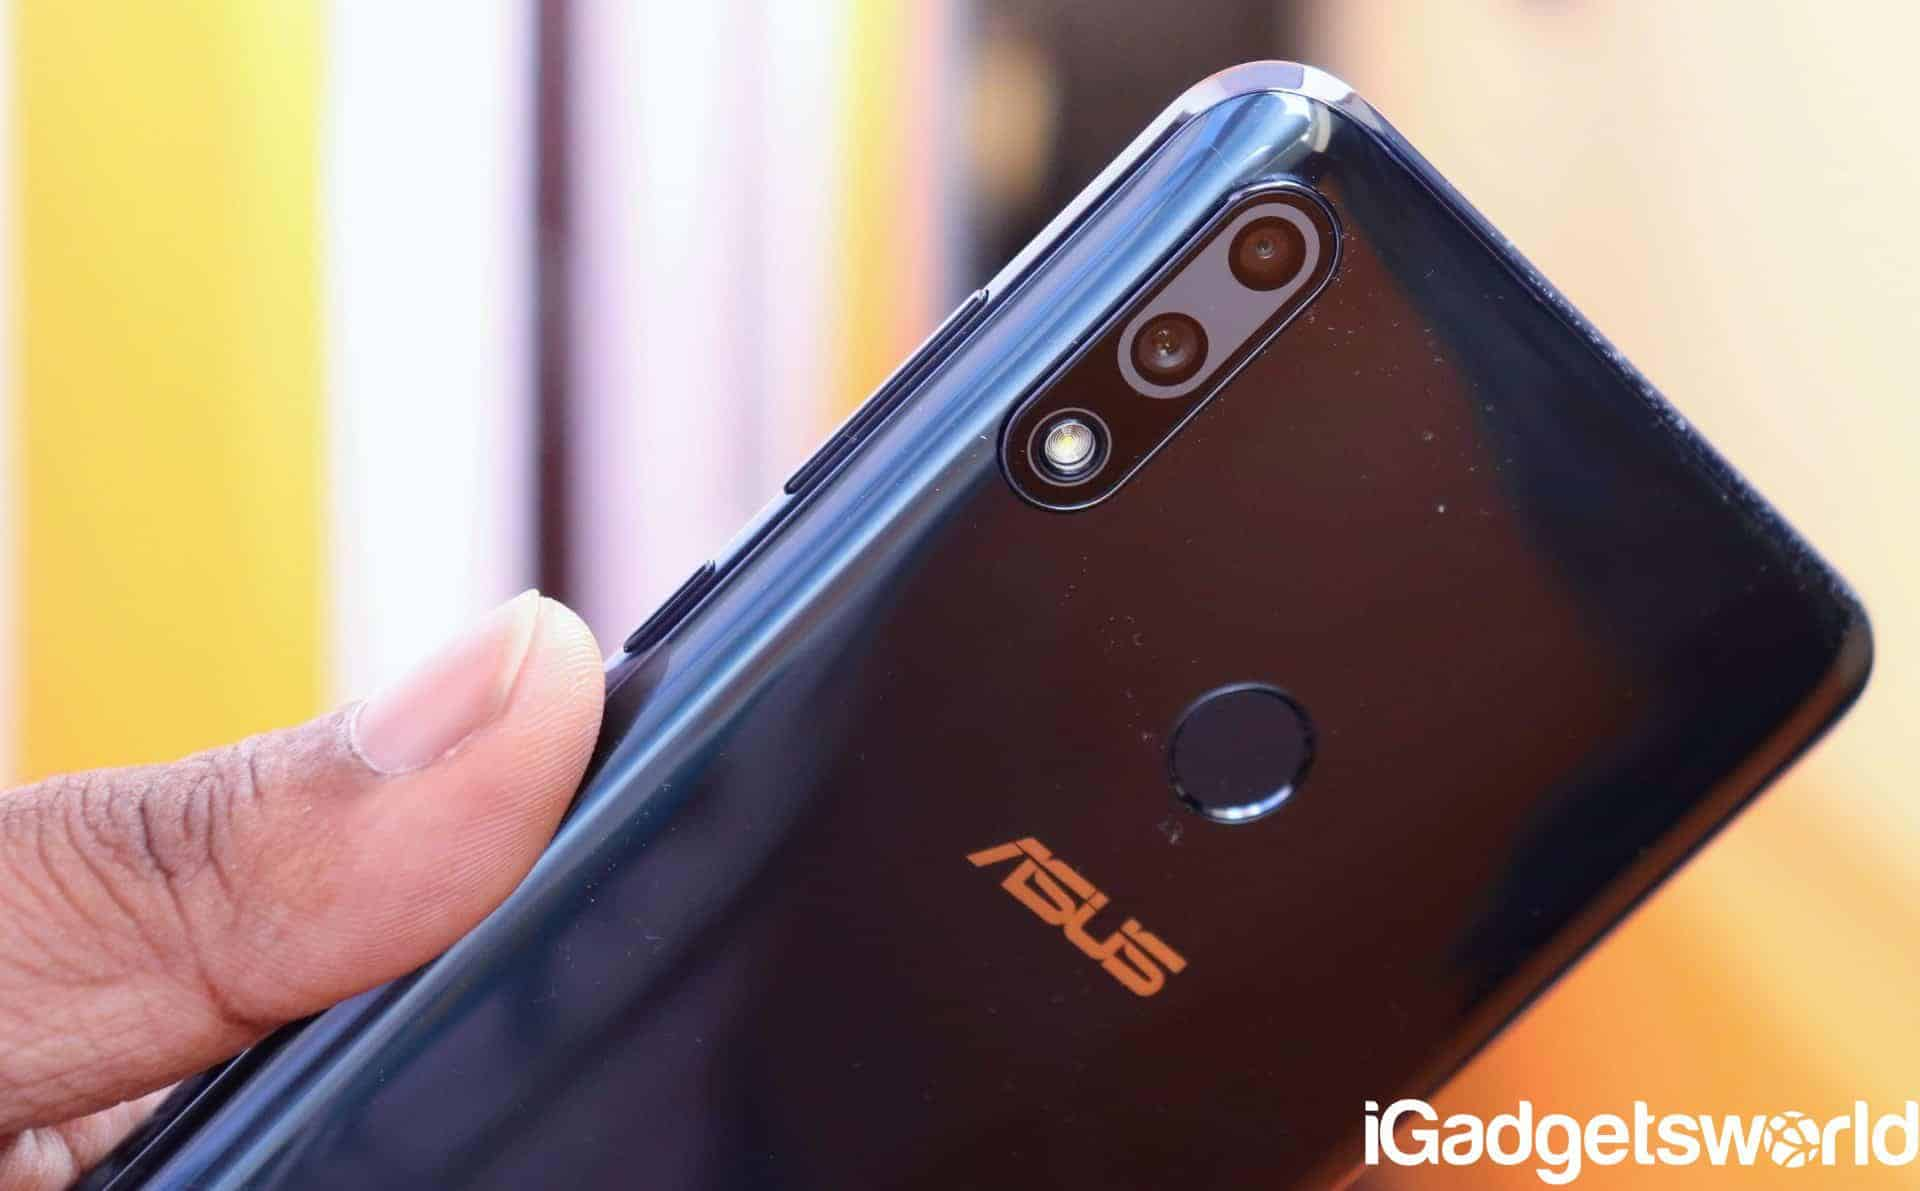 Zenfone Max Pro M2 - Hands-on Review9